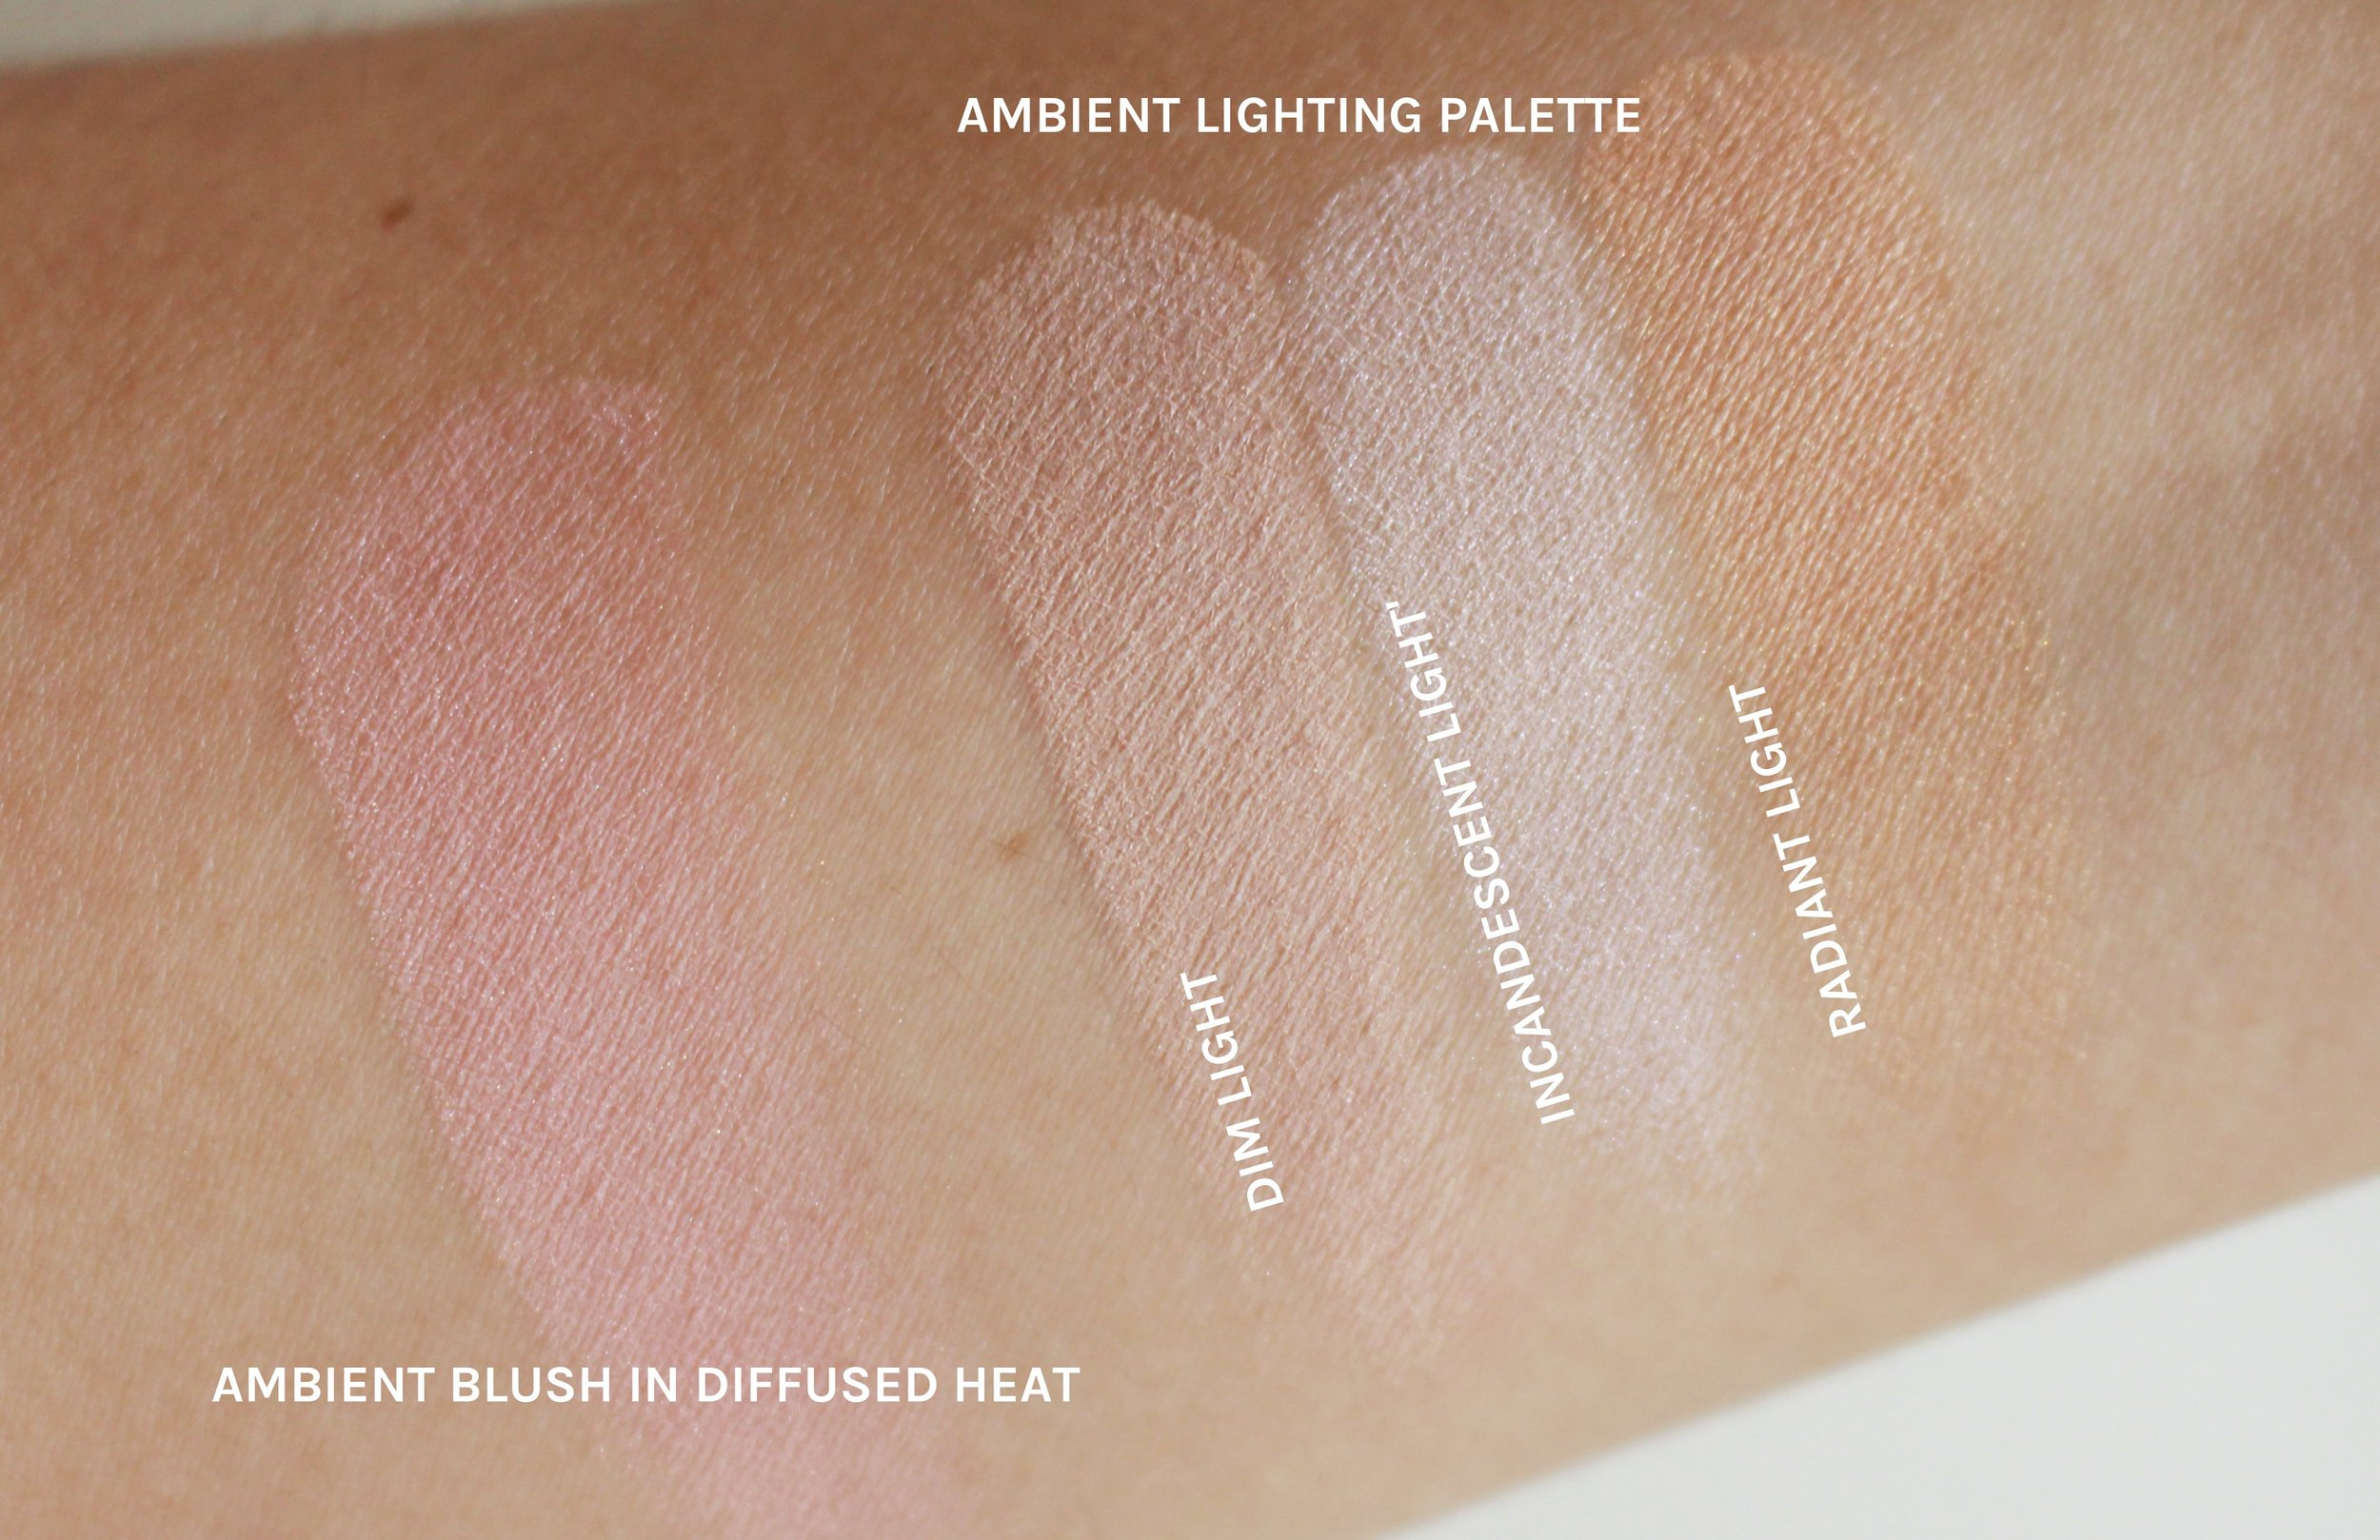 The swatches don't look much, but they're magic on skin